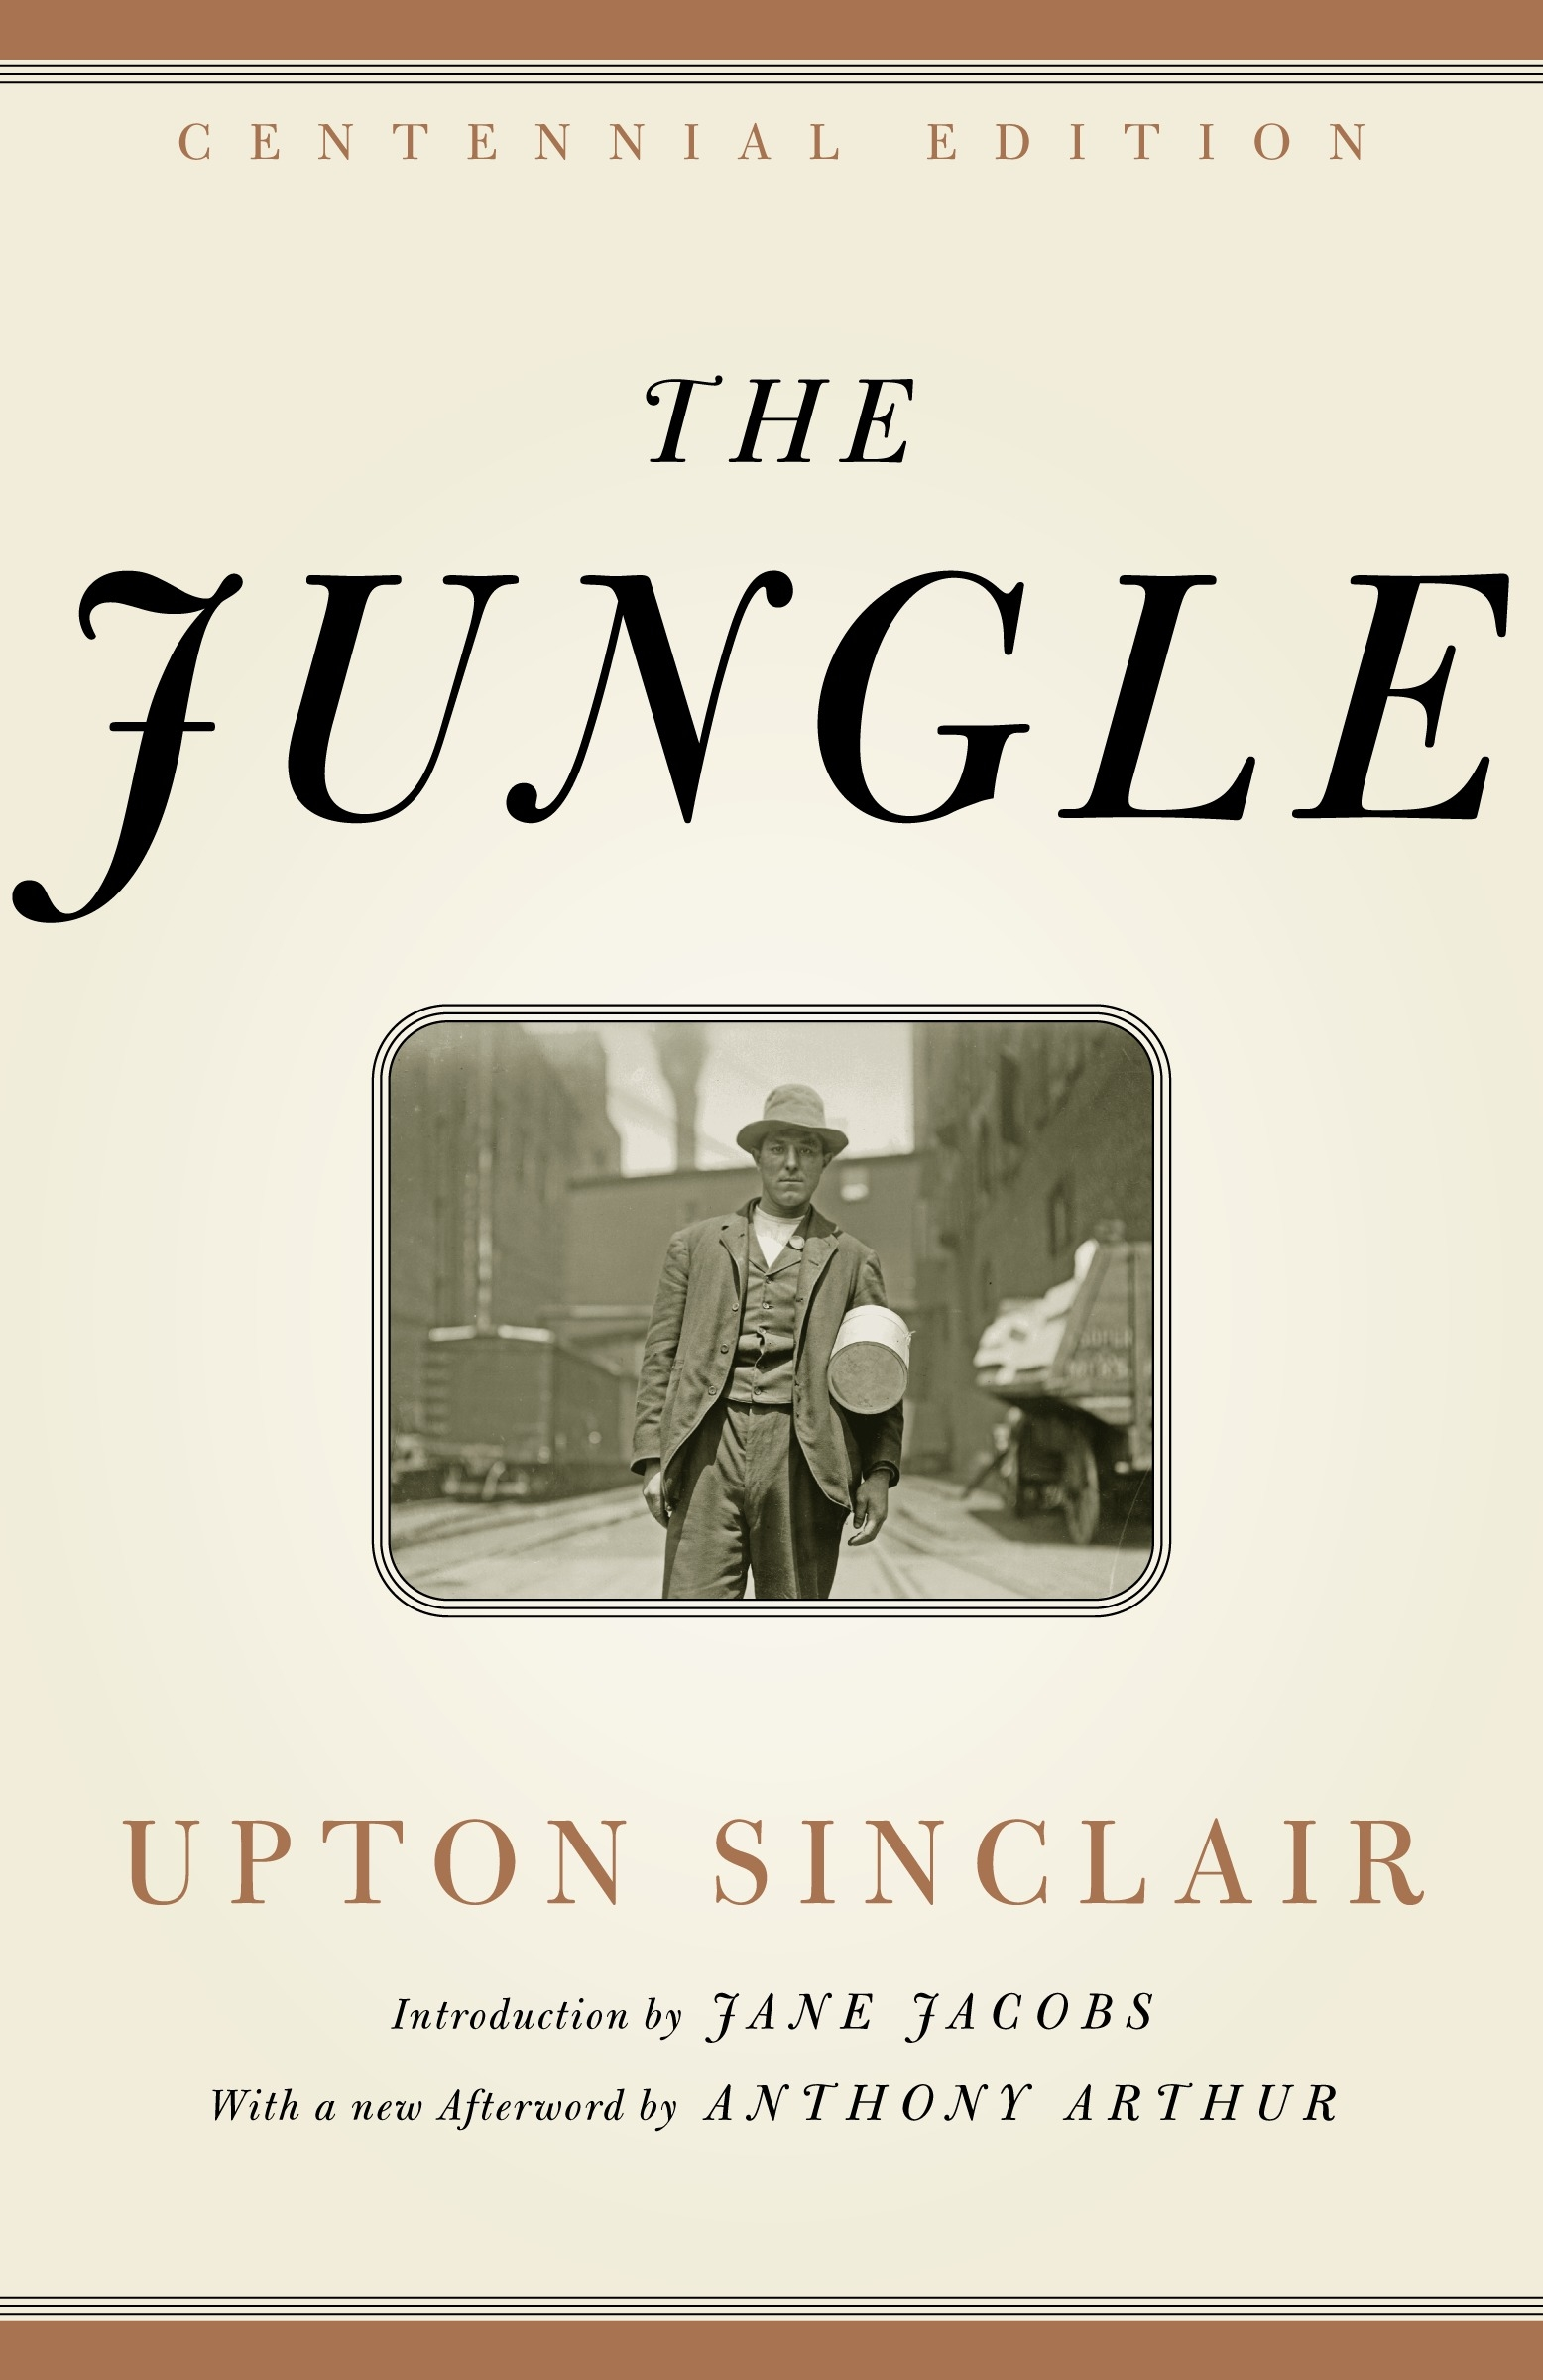 a literary analysis of the events in the jungle by upton sinclair The impact of literature such as the novel of the jungle written by upton sinclair critical analysis of upton sinclair's the jungle essay.